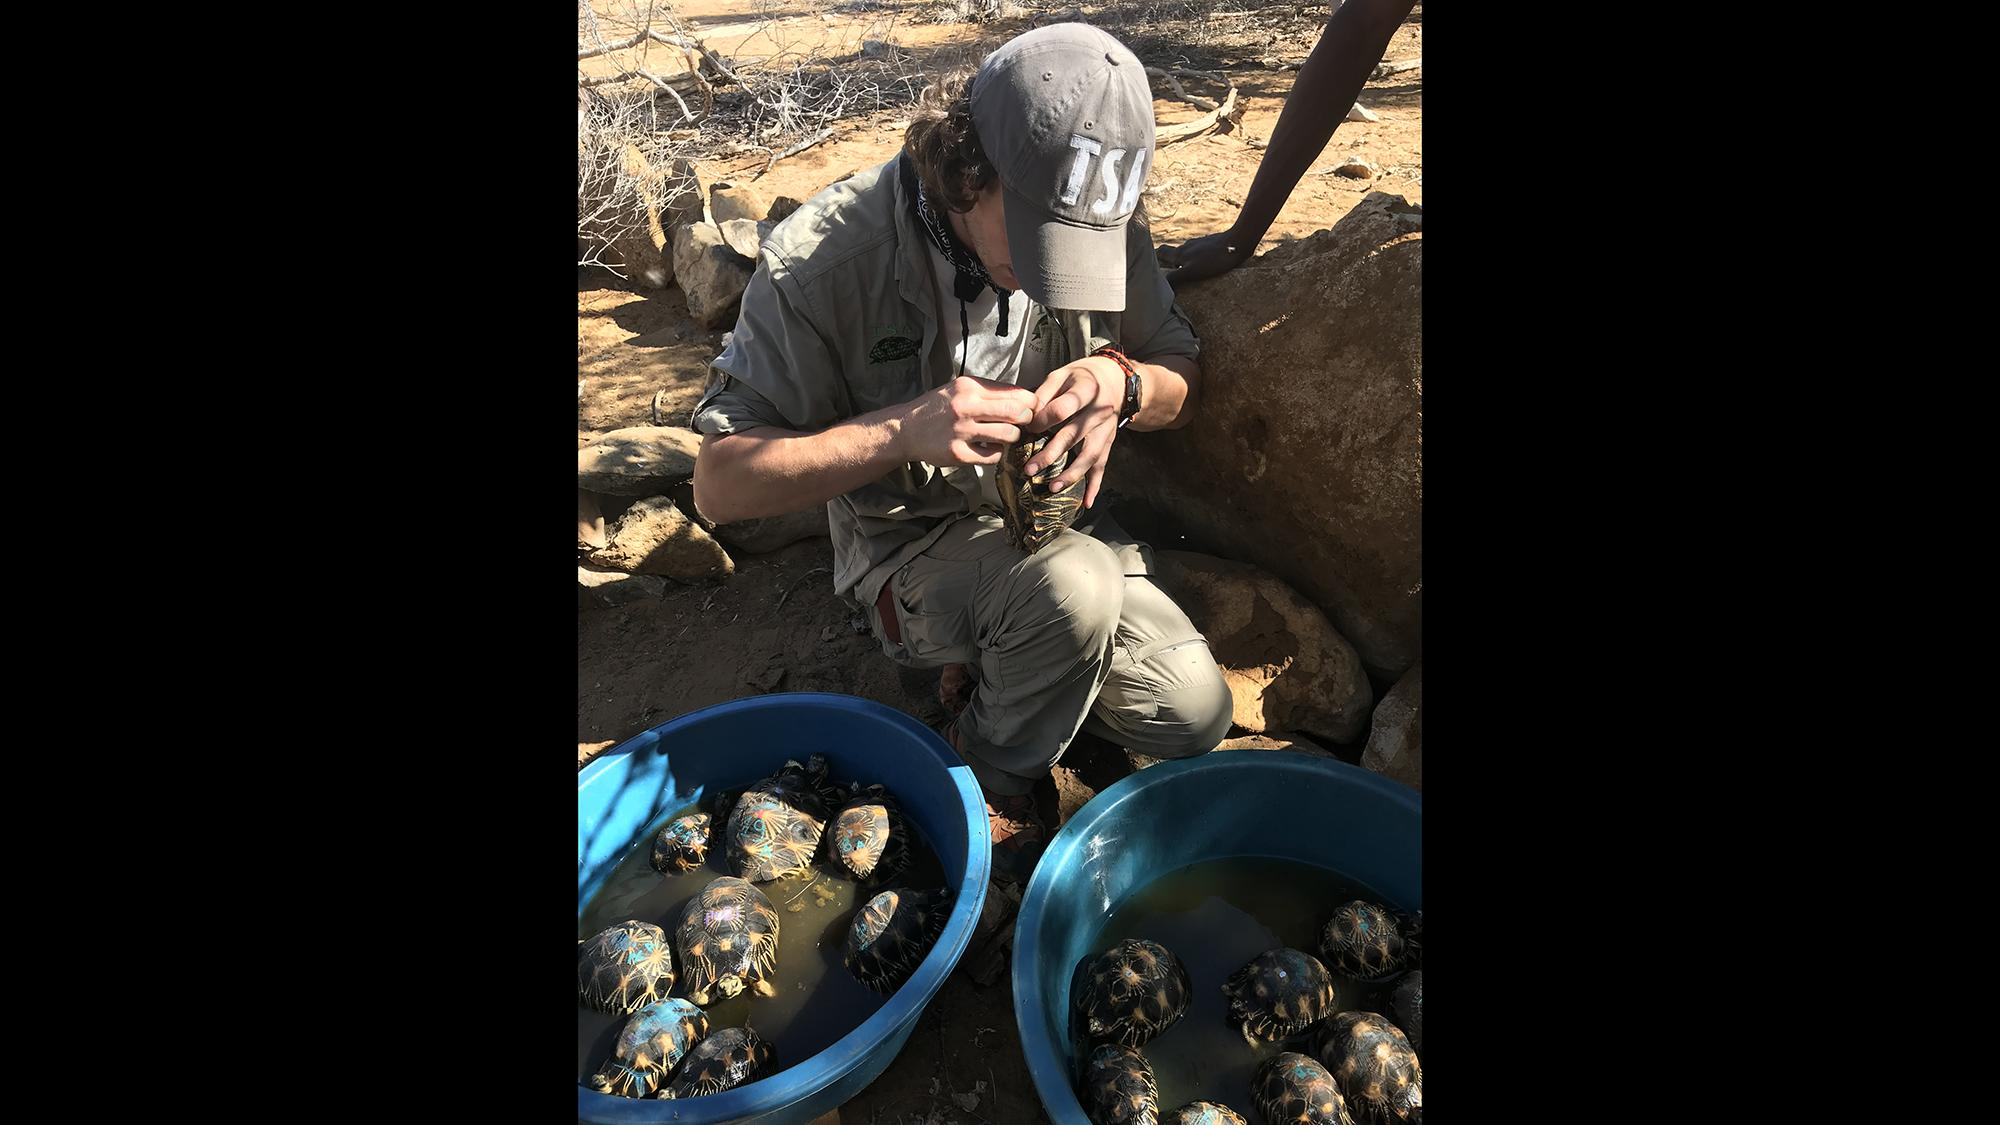 A representative of Turtle Survival Alliance examines tortoises that were found last month living in an abandoned home in Madagascar. (Courtesy Turtle Survival Alliance)